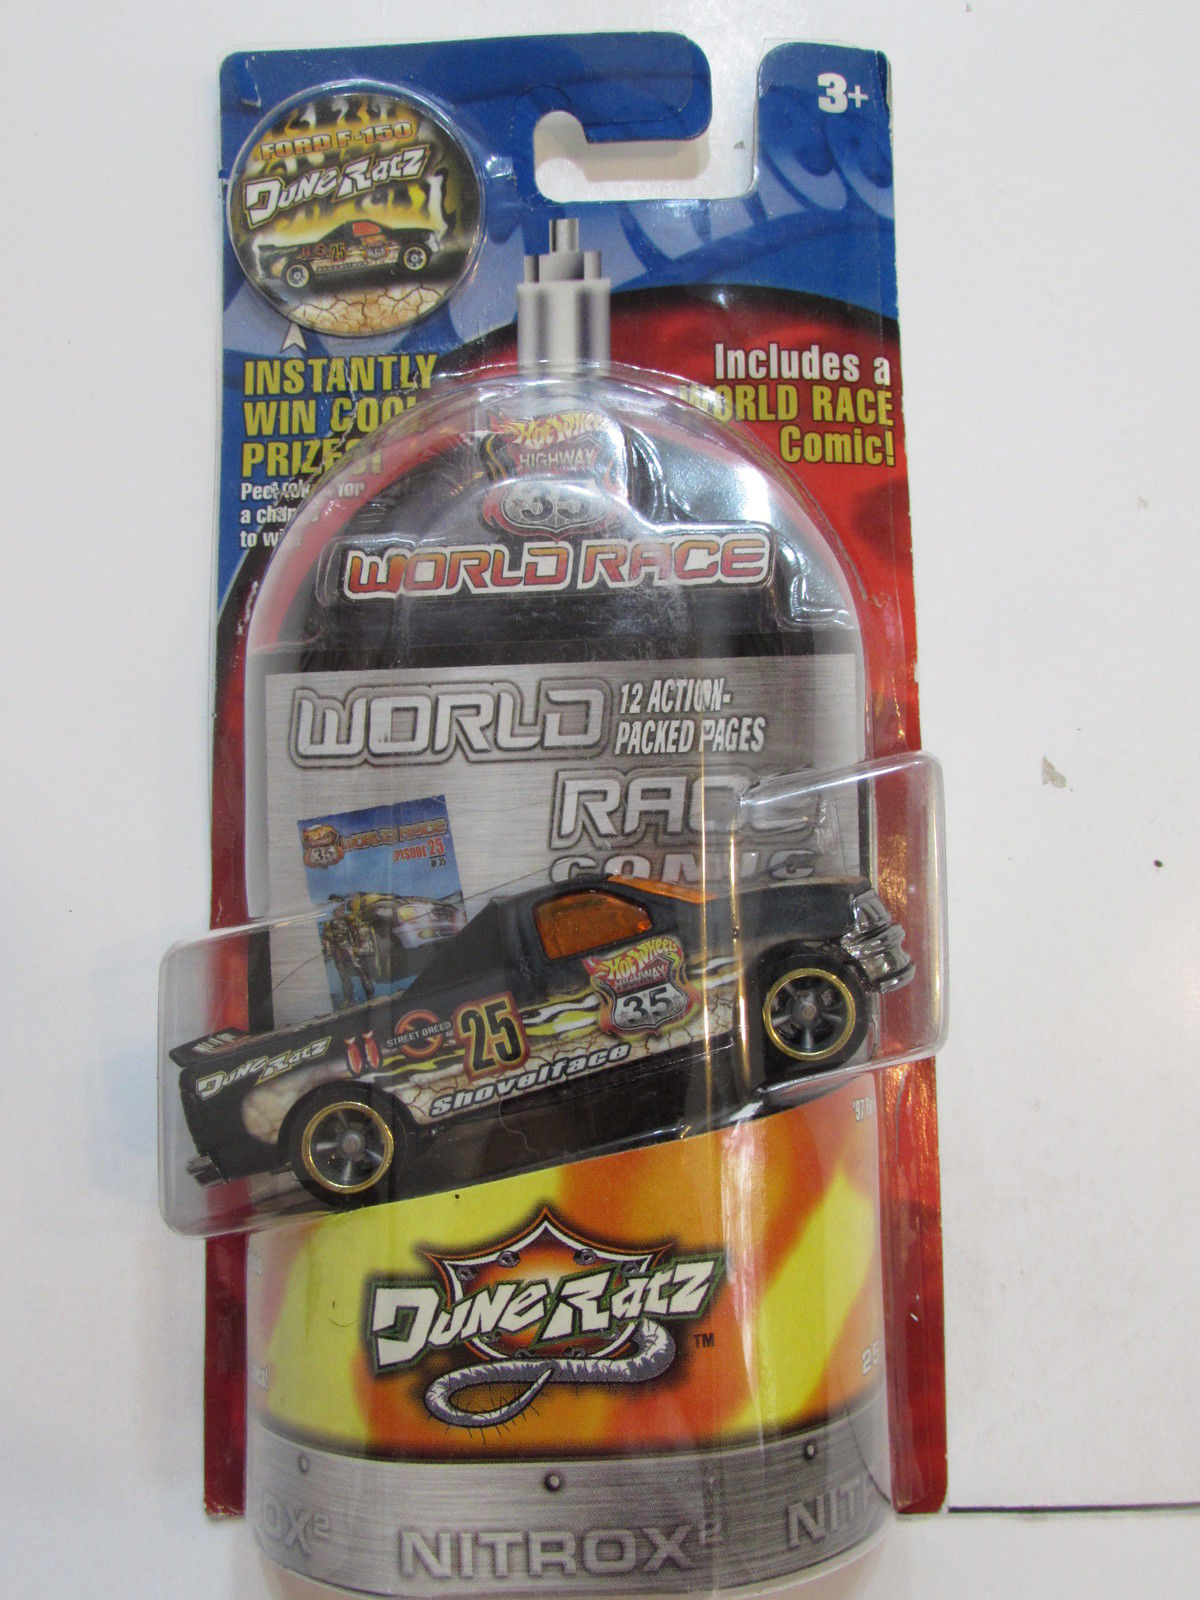 HOT WHEELS HIGHWAY 35 WORLD RACE DUNE RATZ #25/35 '97 FORD F - 150